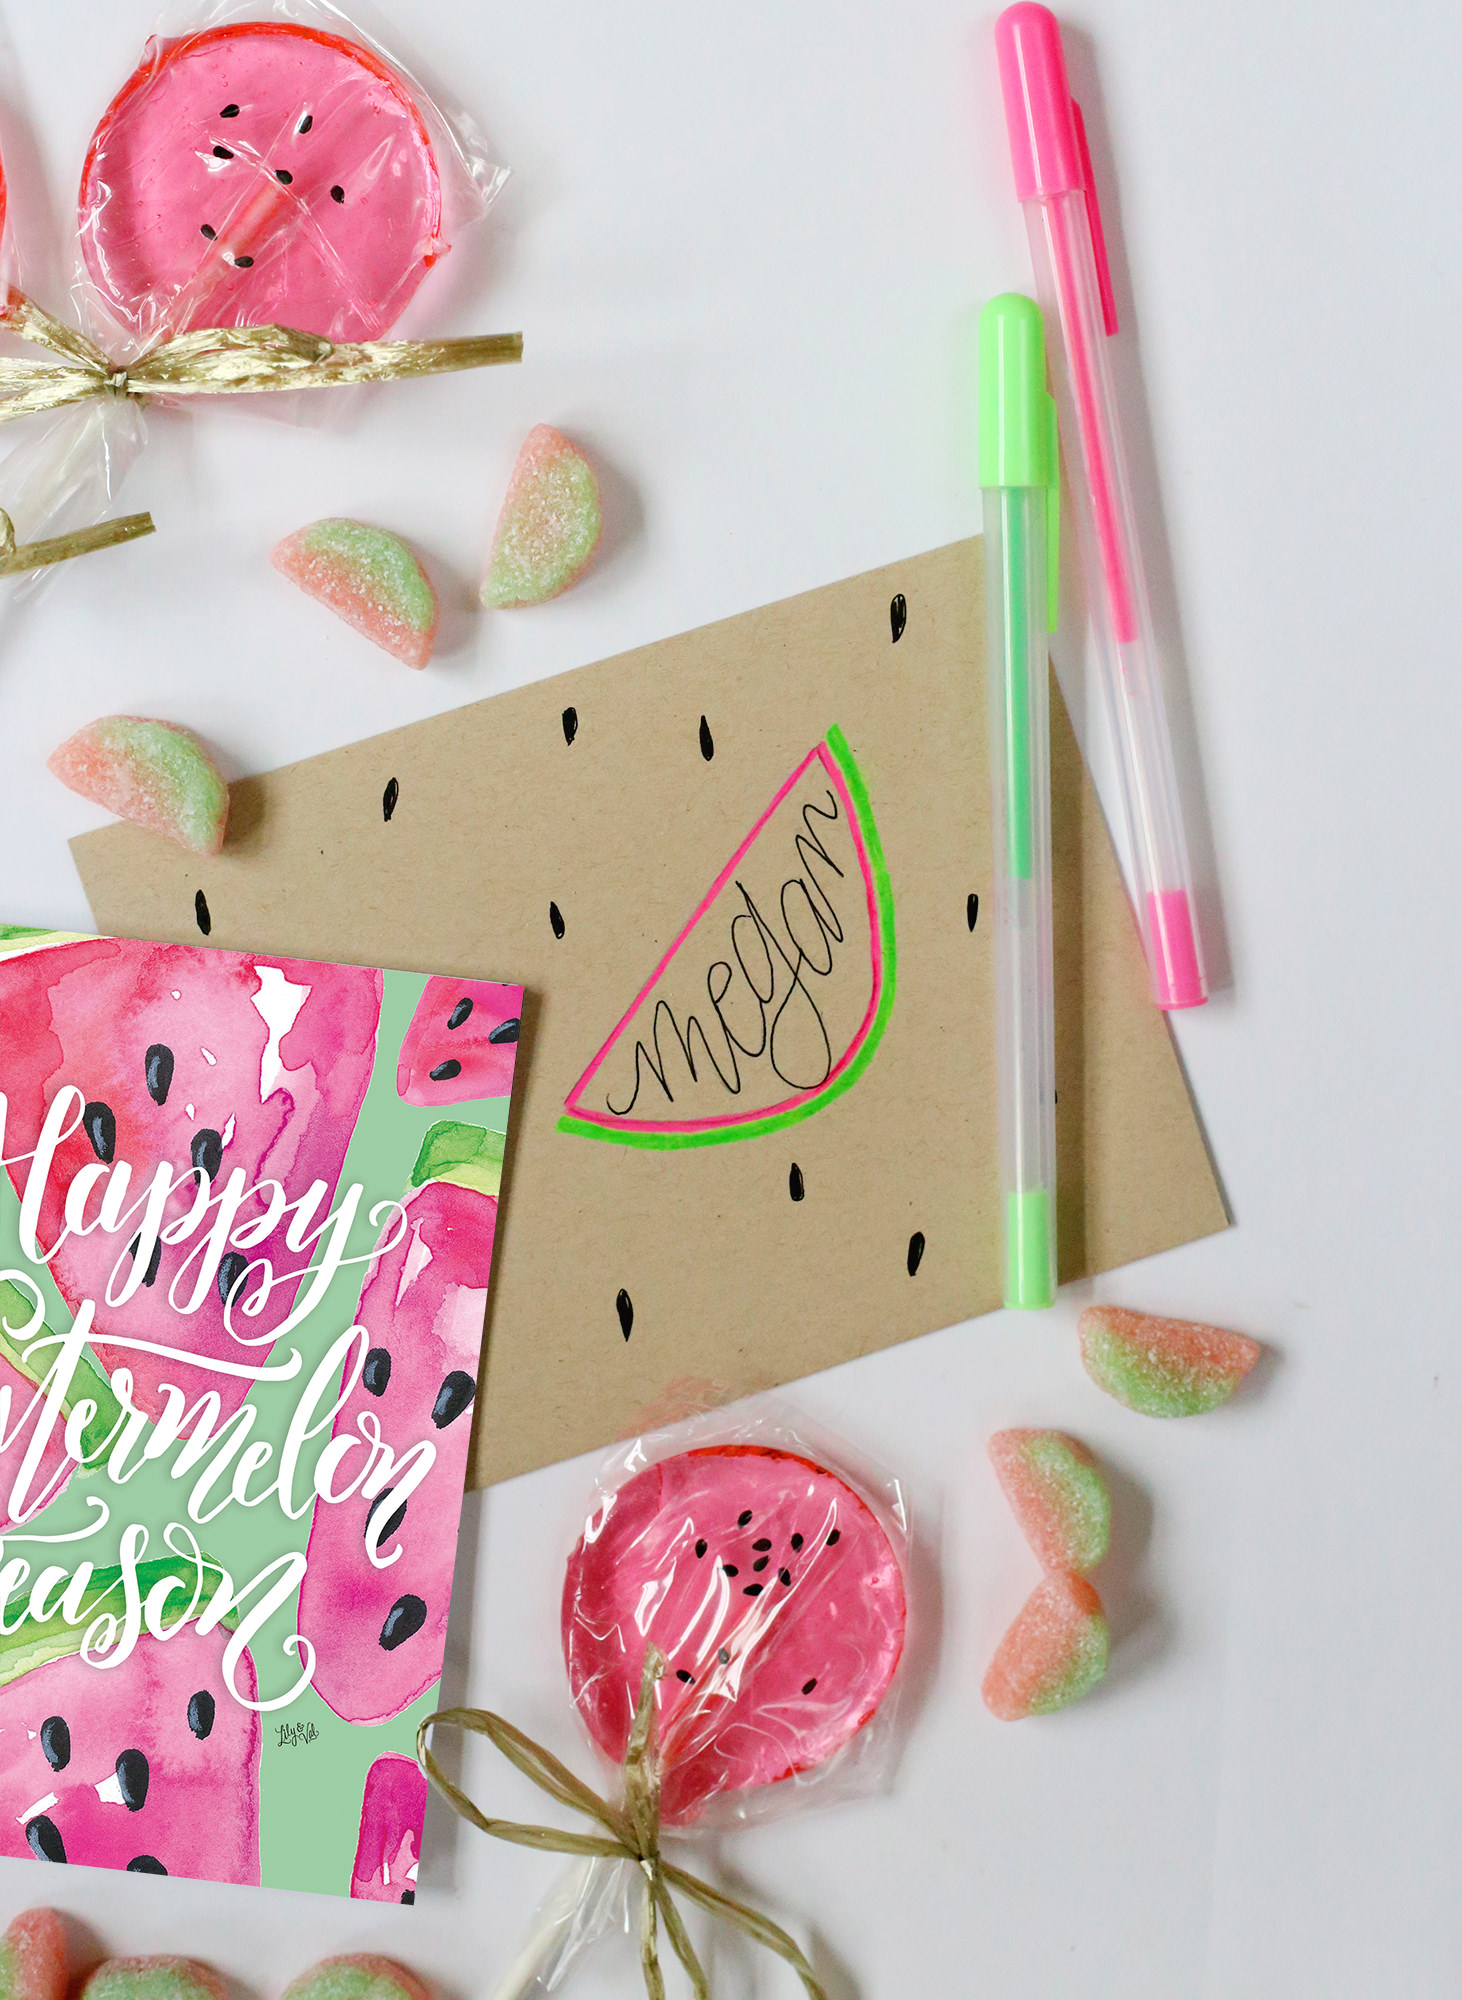 Watermelon-inspired envelope via Lily & Val Living. Summertime snail mail!